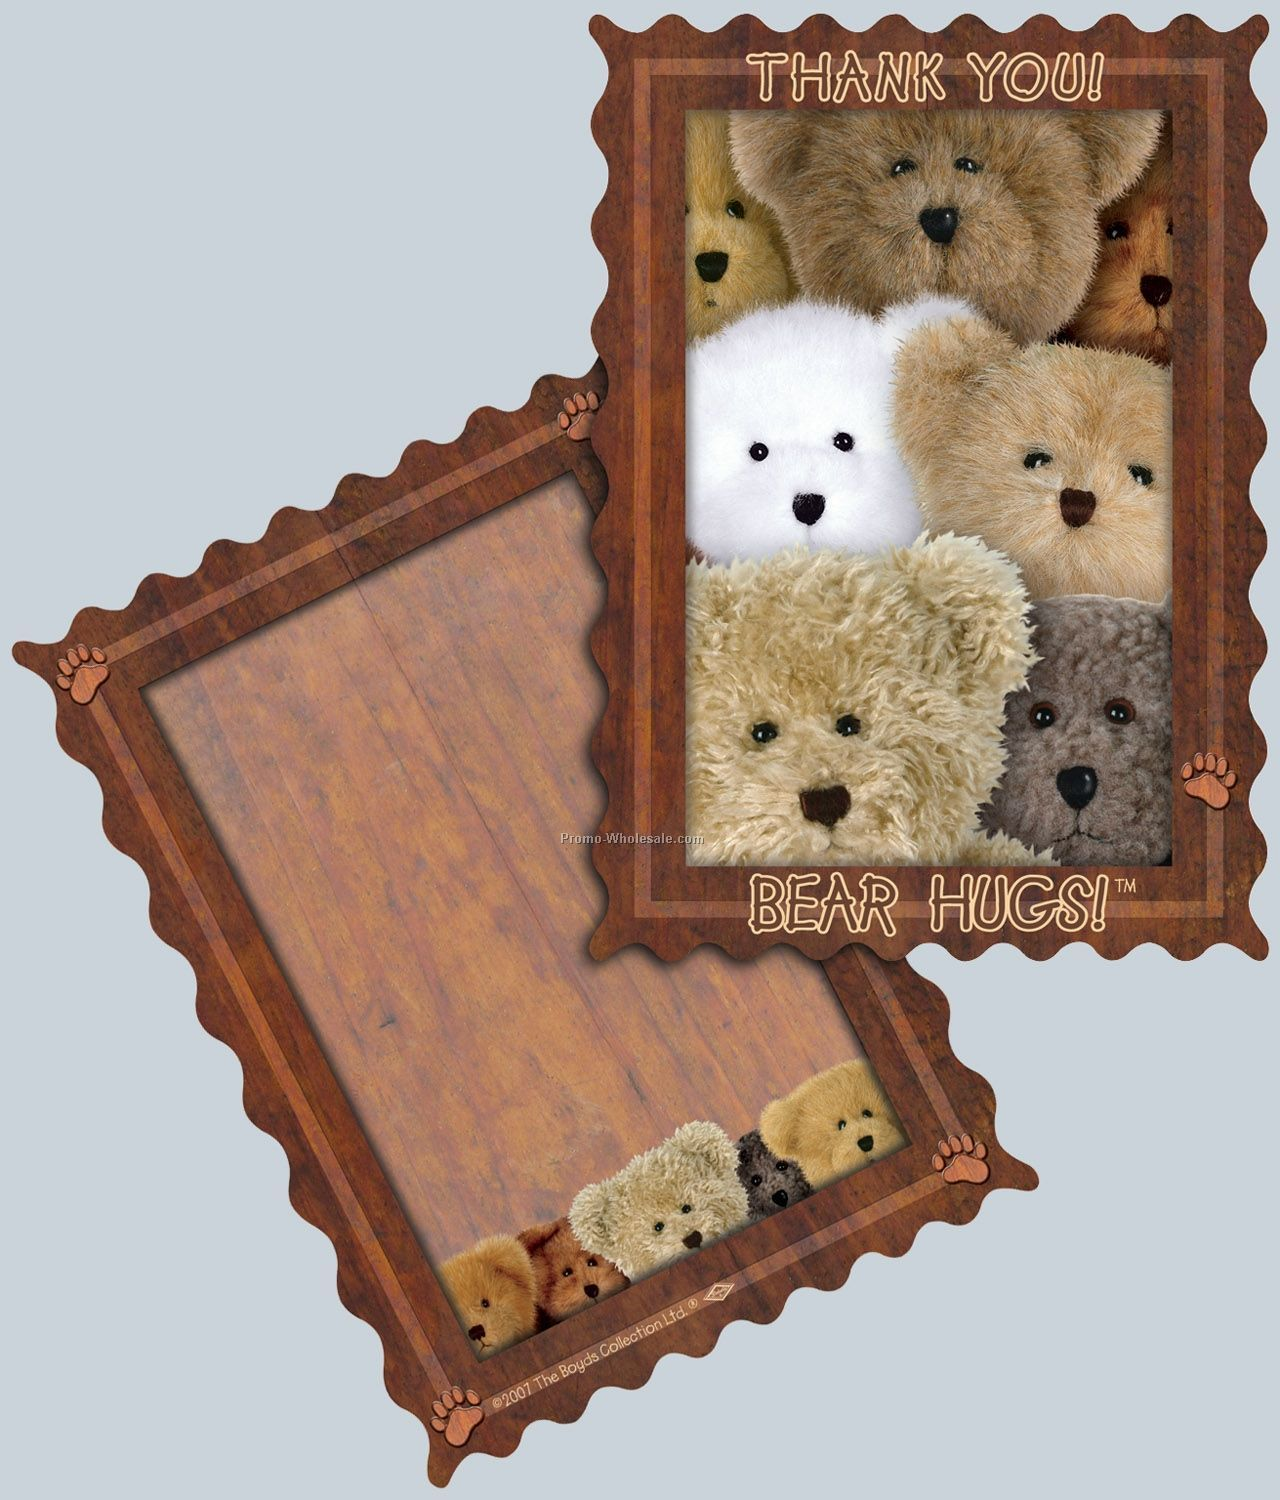 Boyds Bears Thank You Note - Bear Hugs